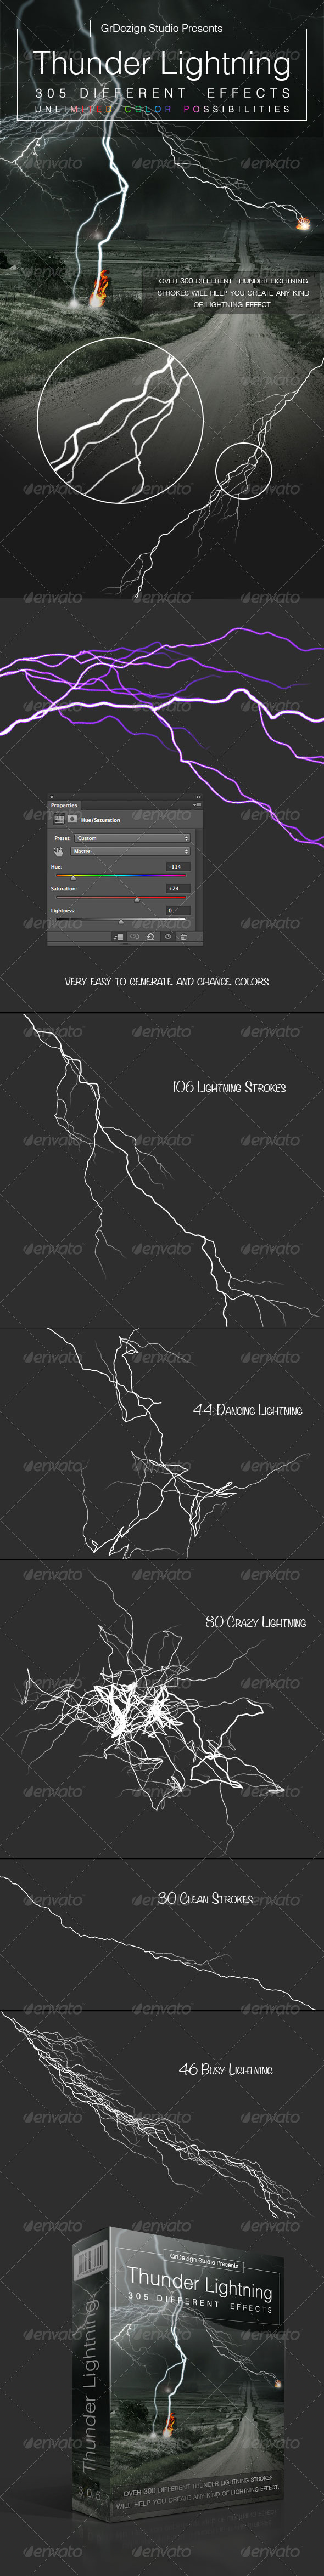 Thunder Lightning Effects - Decorative Graphics